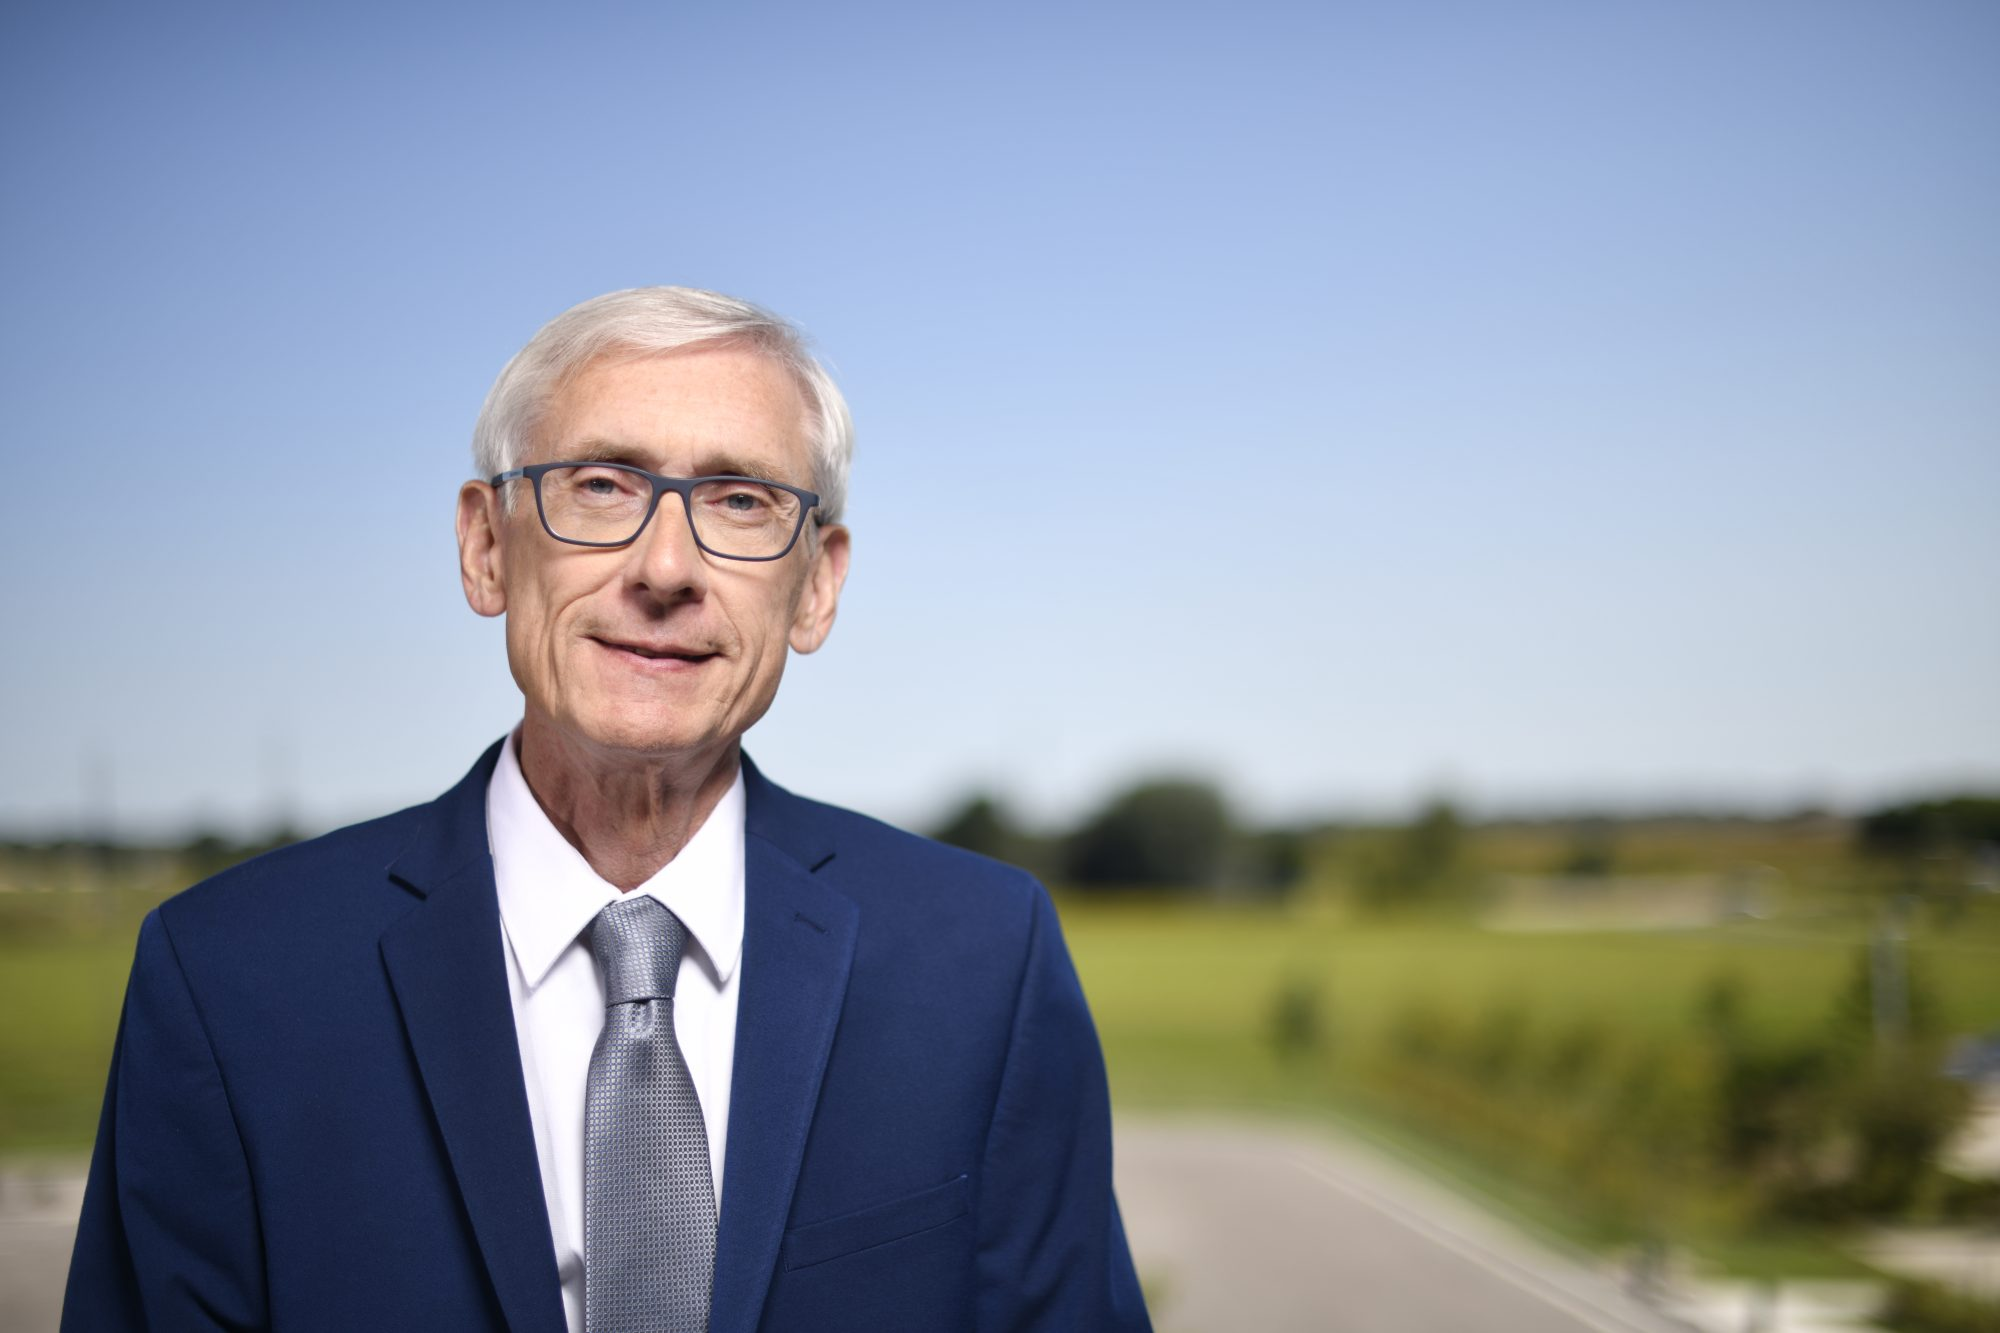 Gov. Evers, WEDC Announce Pilot Program to Test SpaceX Internet Service in Eau Claire County